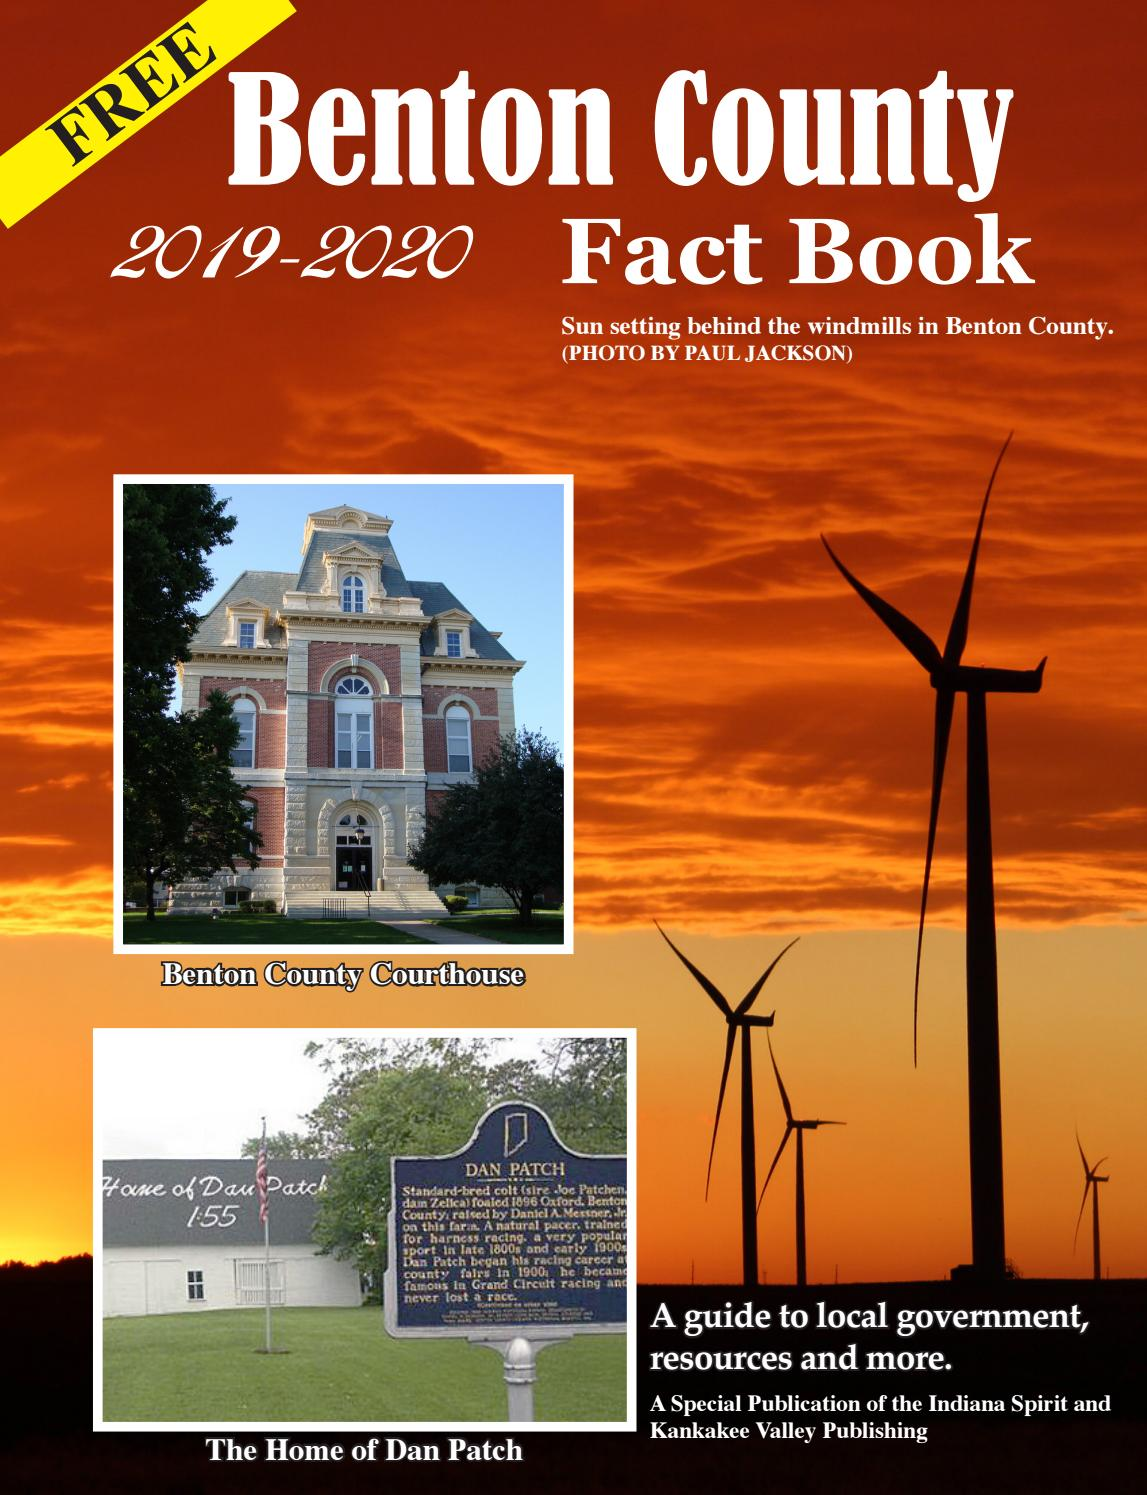 2019-20 Benton County Fact Book by Newton County Newspapers